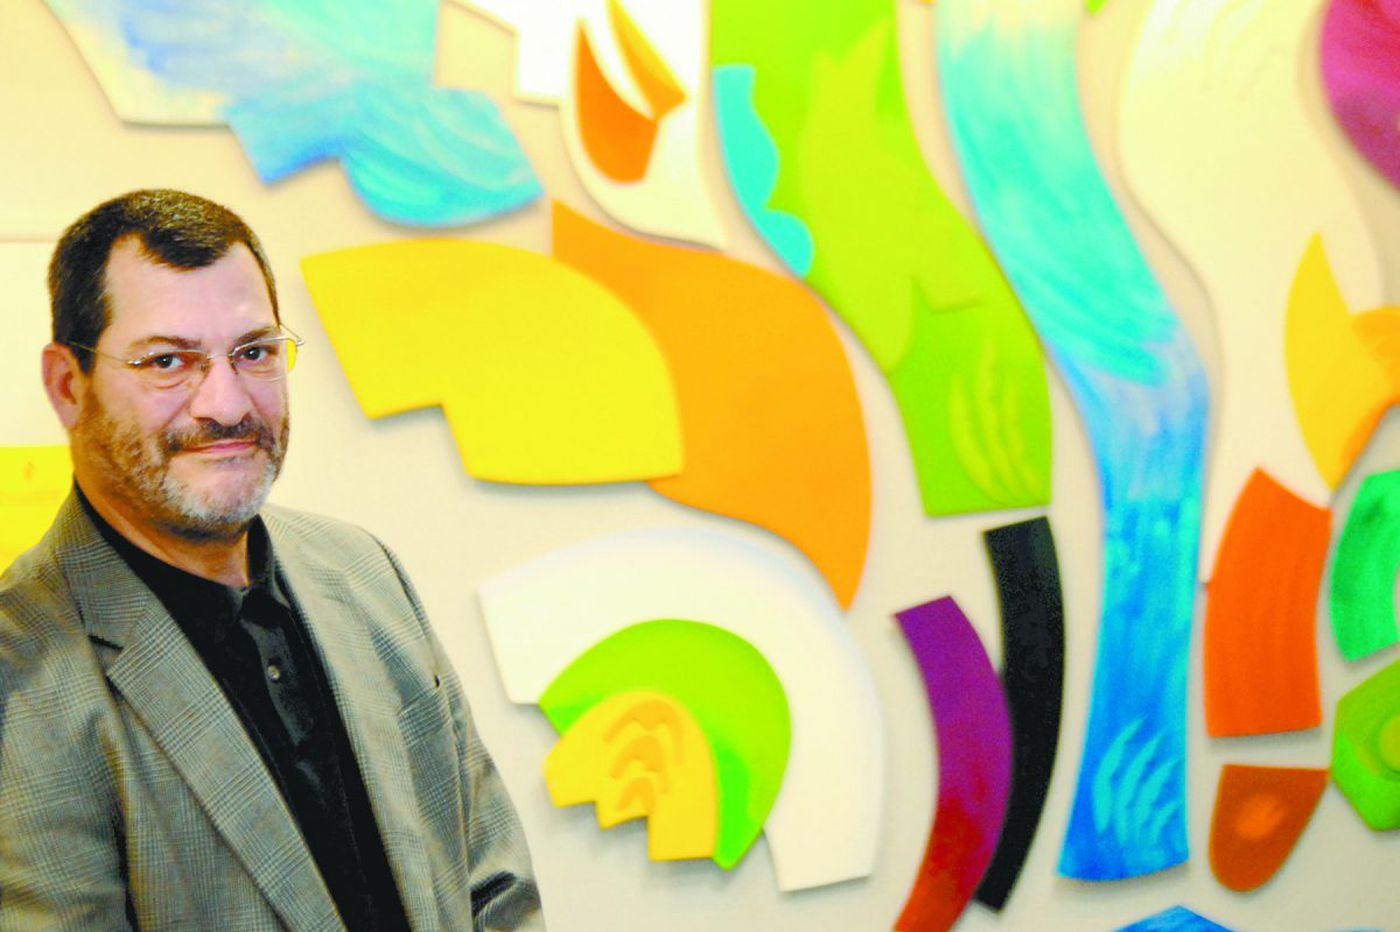 What really matters in the arts? Bob Capanna remembrance served as a reminder